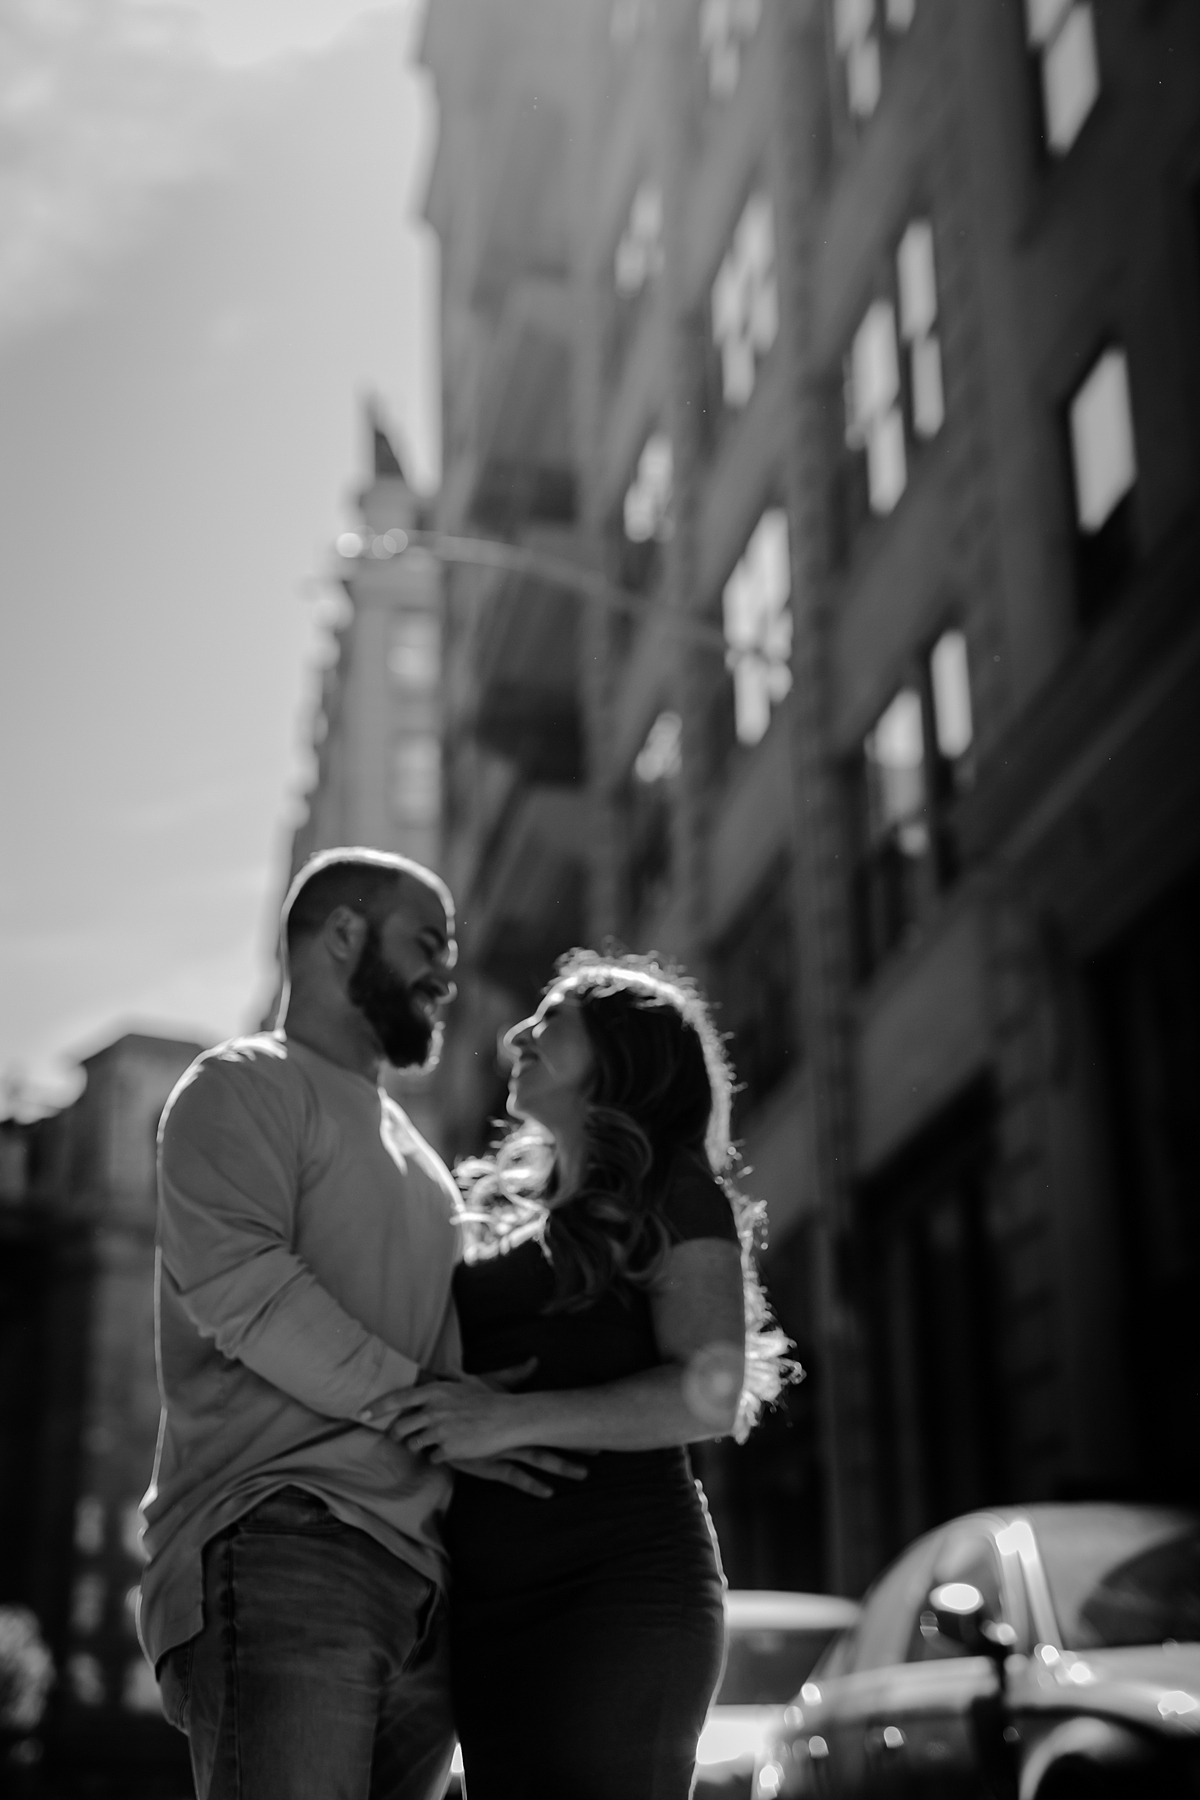 blurred black and white photo of pregnancy husband and wife standing in cobble stoned street in brooklyn during maternity photo shoot. image by krystil mcdowall photography